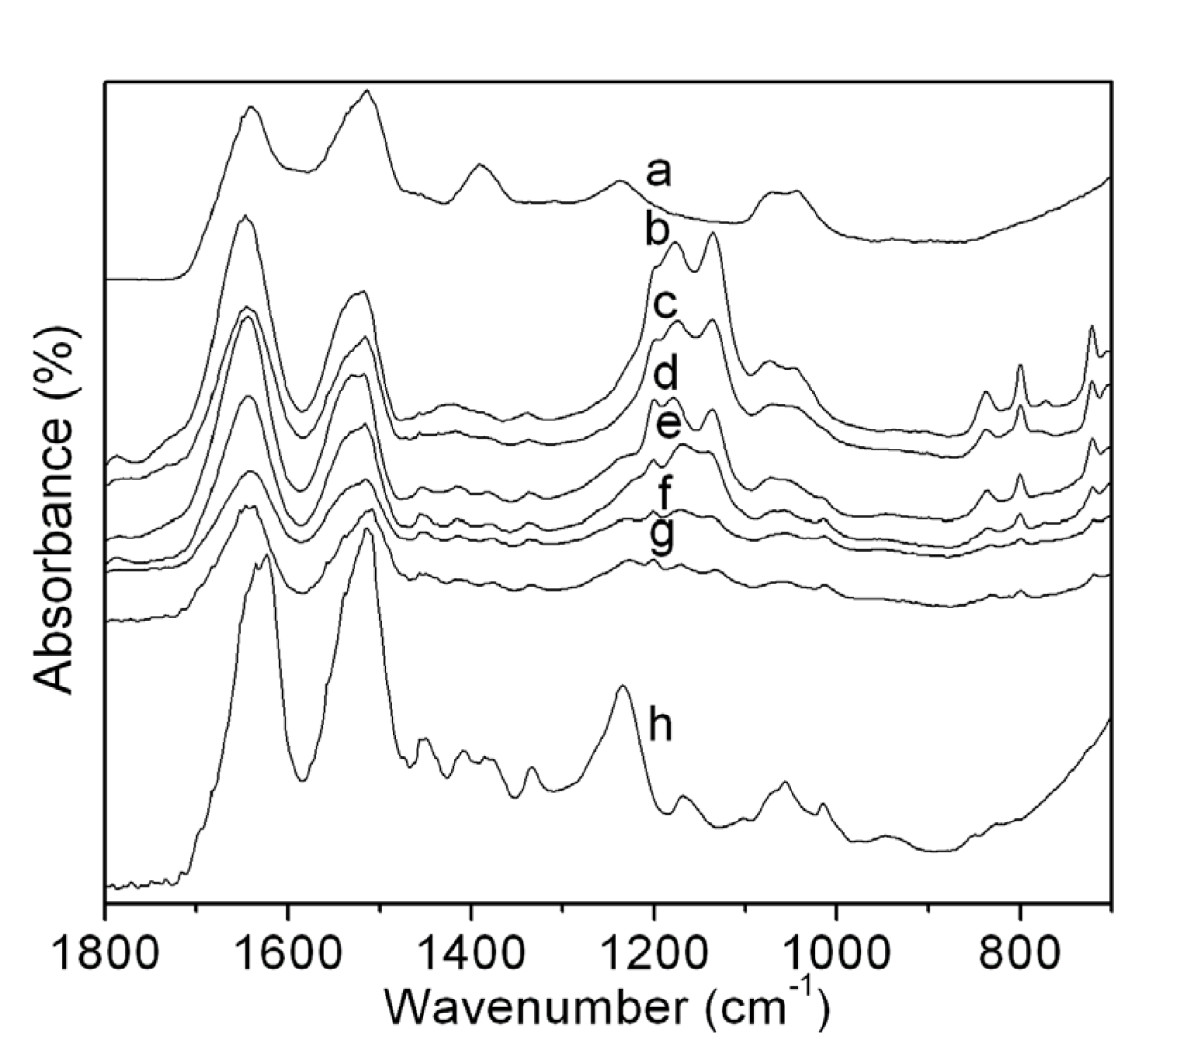 http://static-content.springer.com/image/art%3A10.1186%2F1556-276X-6-510/MediaObjects/11671_2011_Article_623_Fig3_HTML.jpg